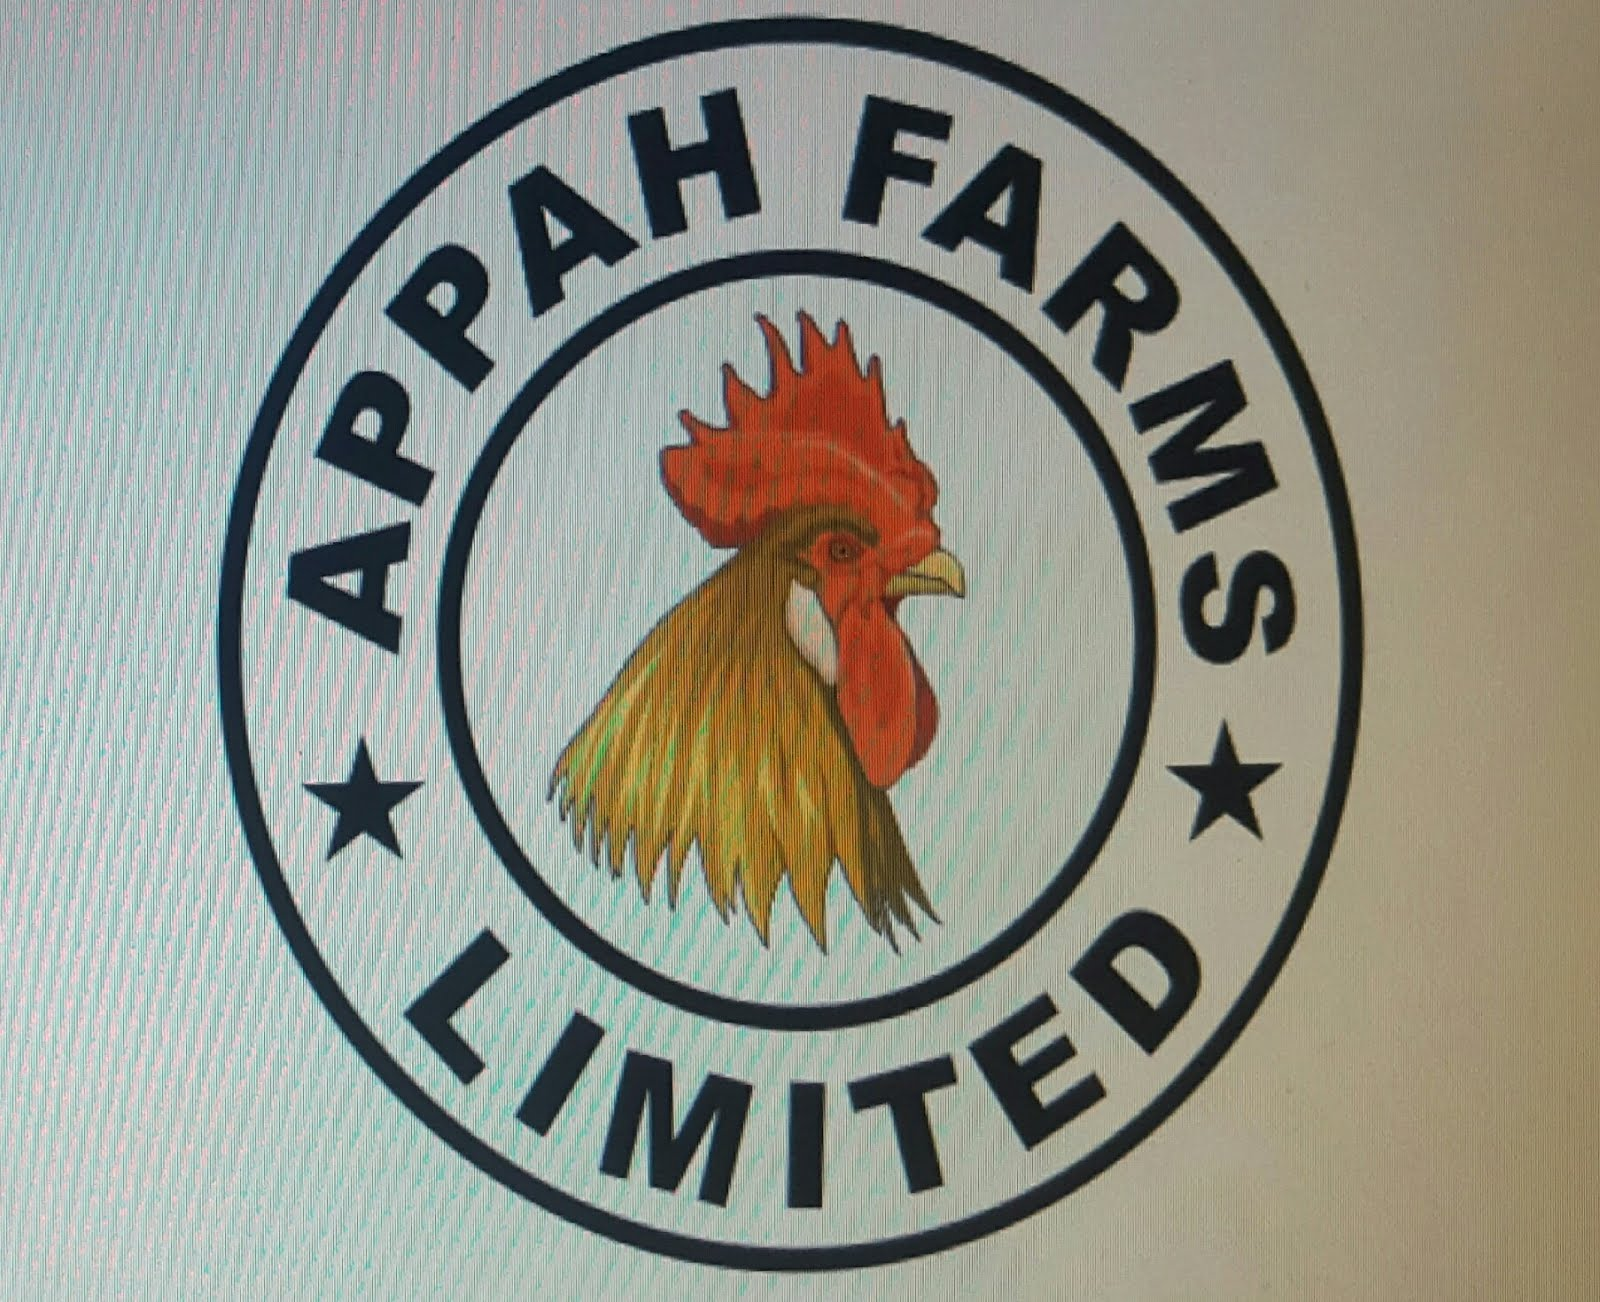 GET YOUR POULTRY PRODUCTS FROM US